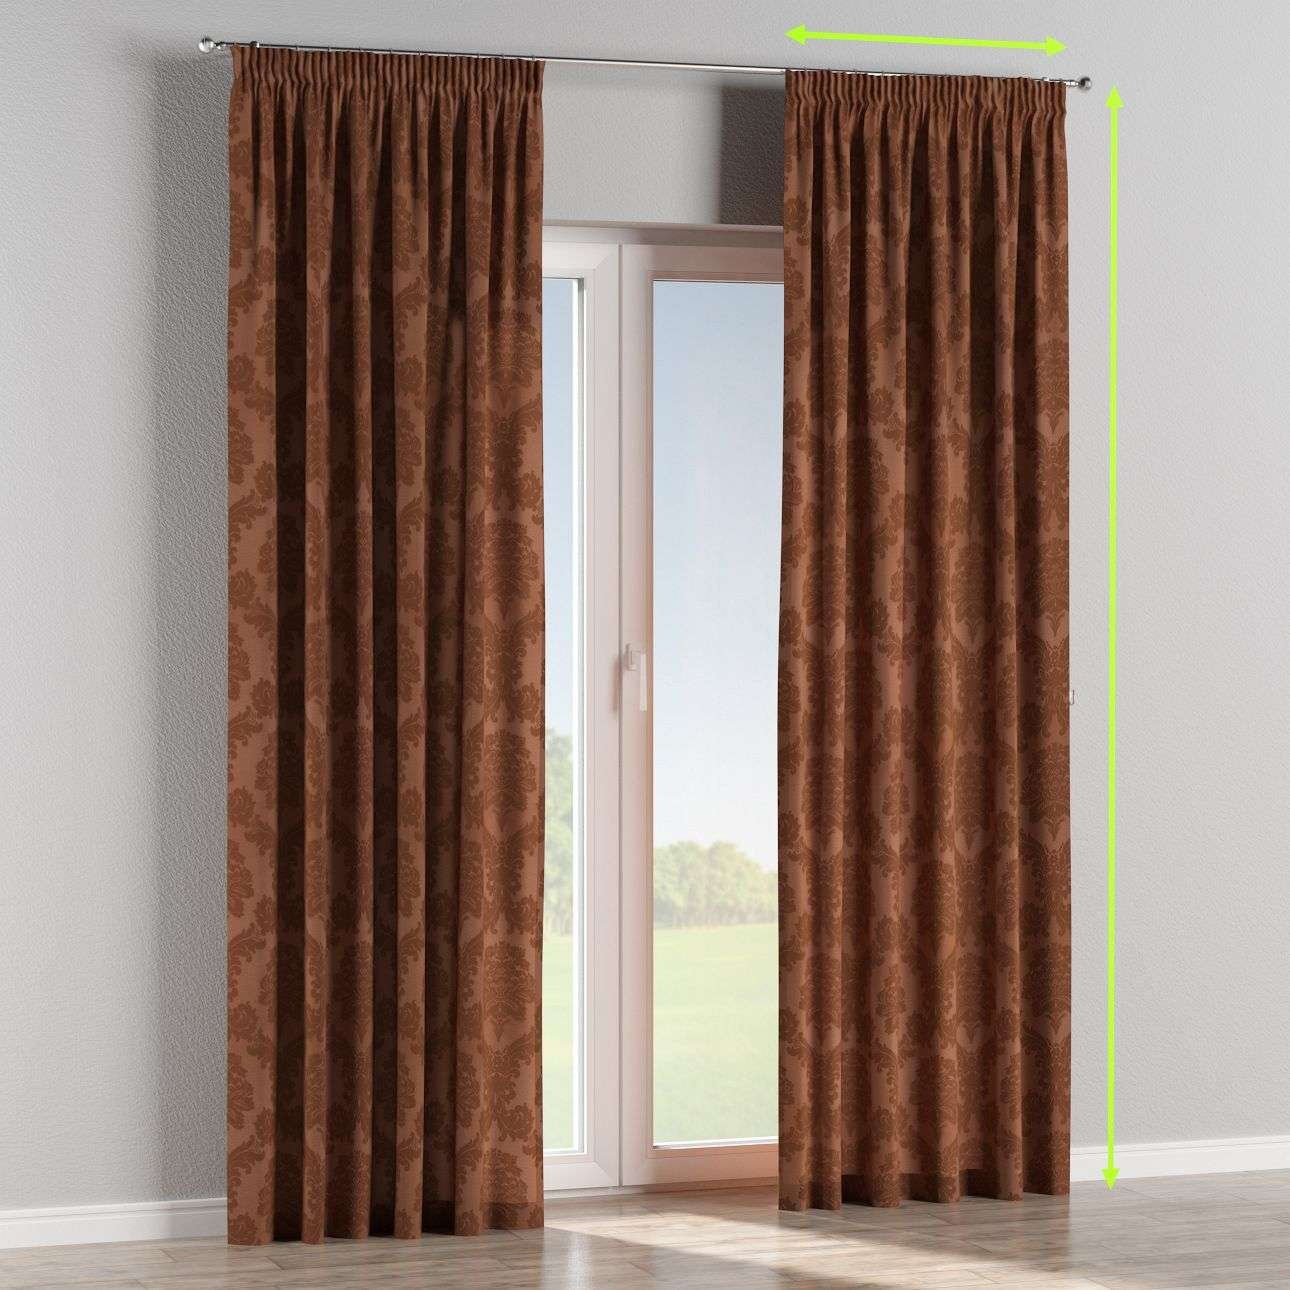 Pencil pleat lined curtains in collection Damasco, fabric: 613-88